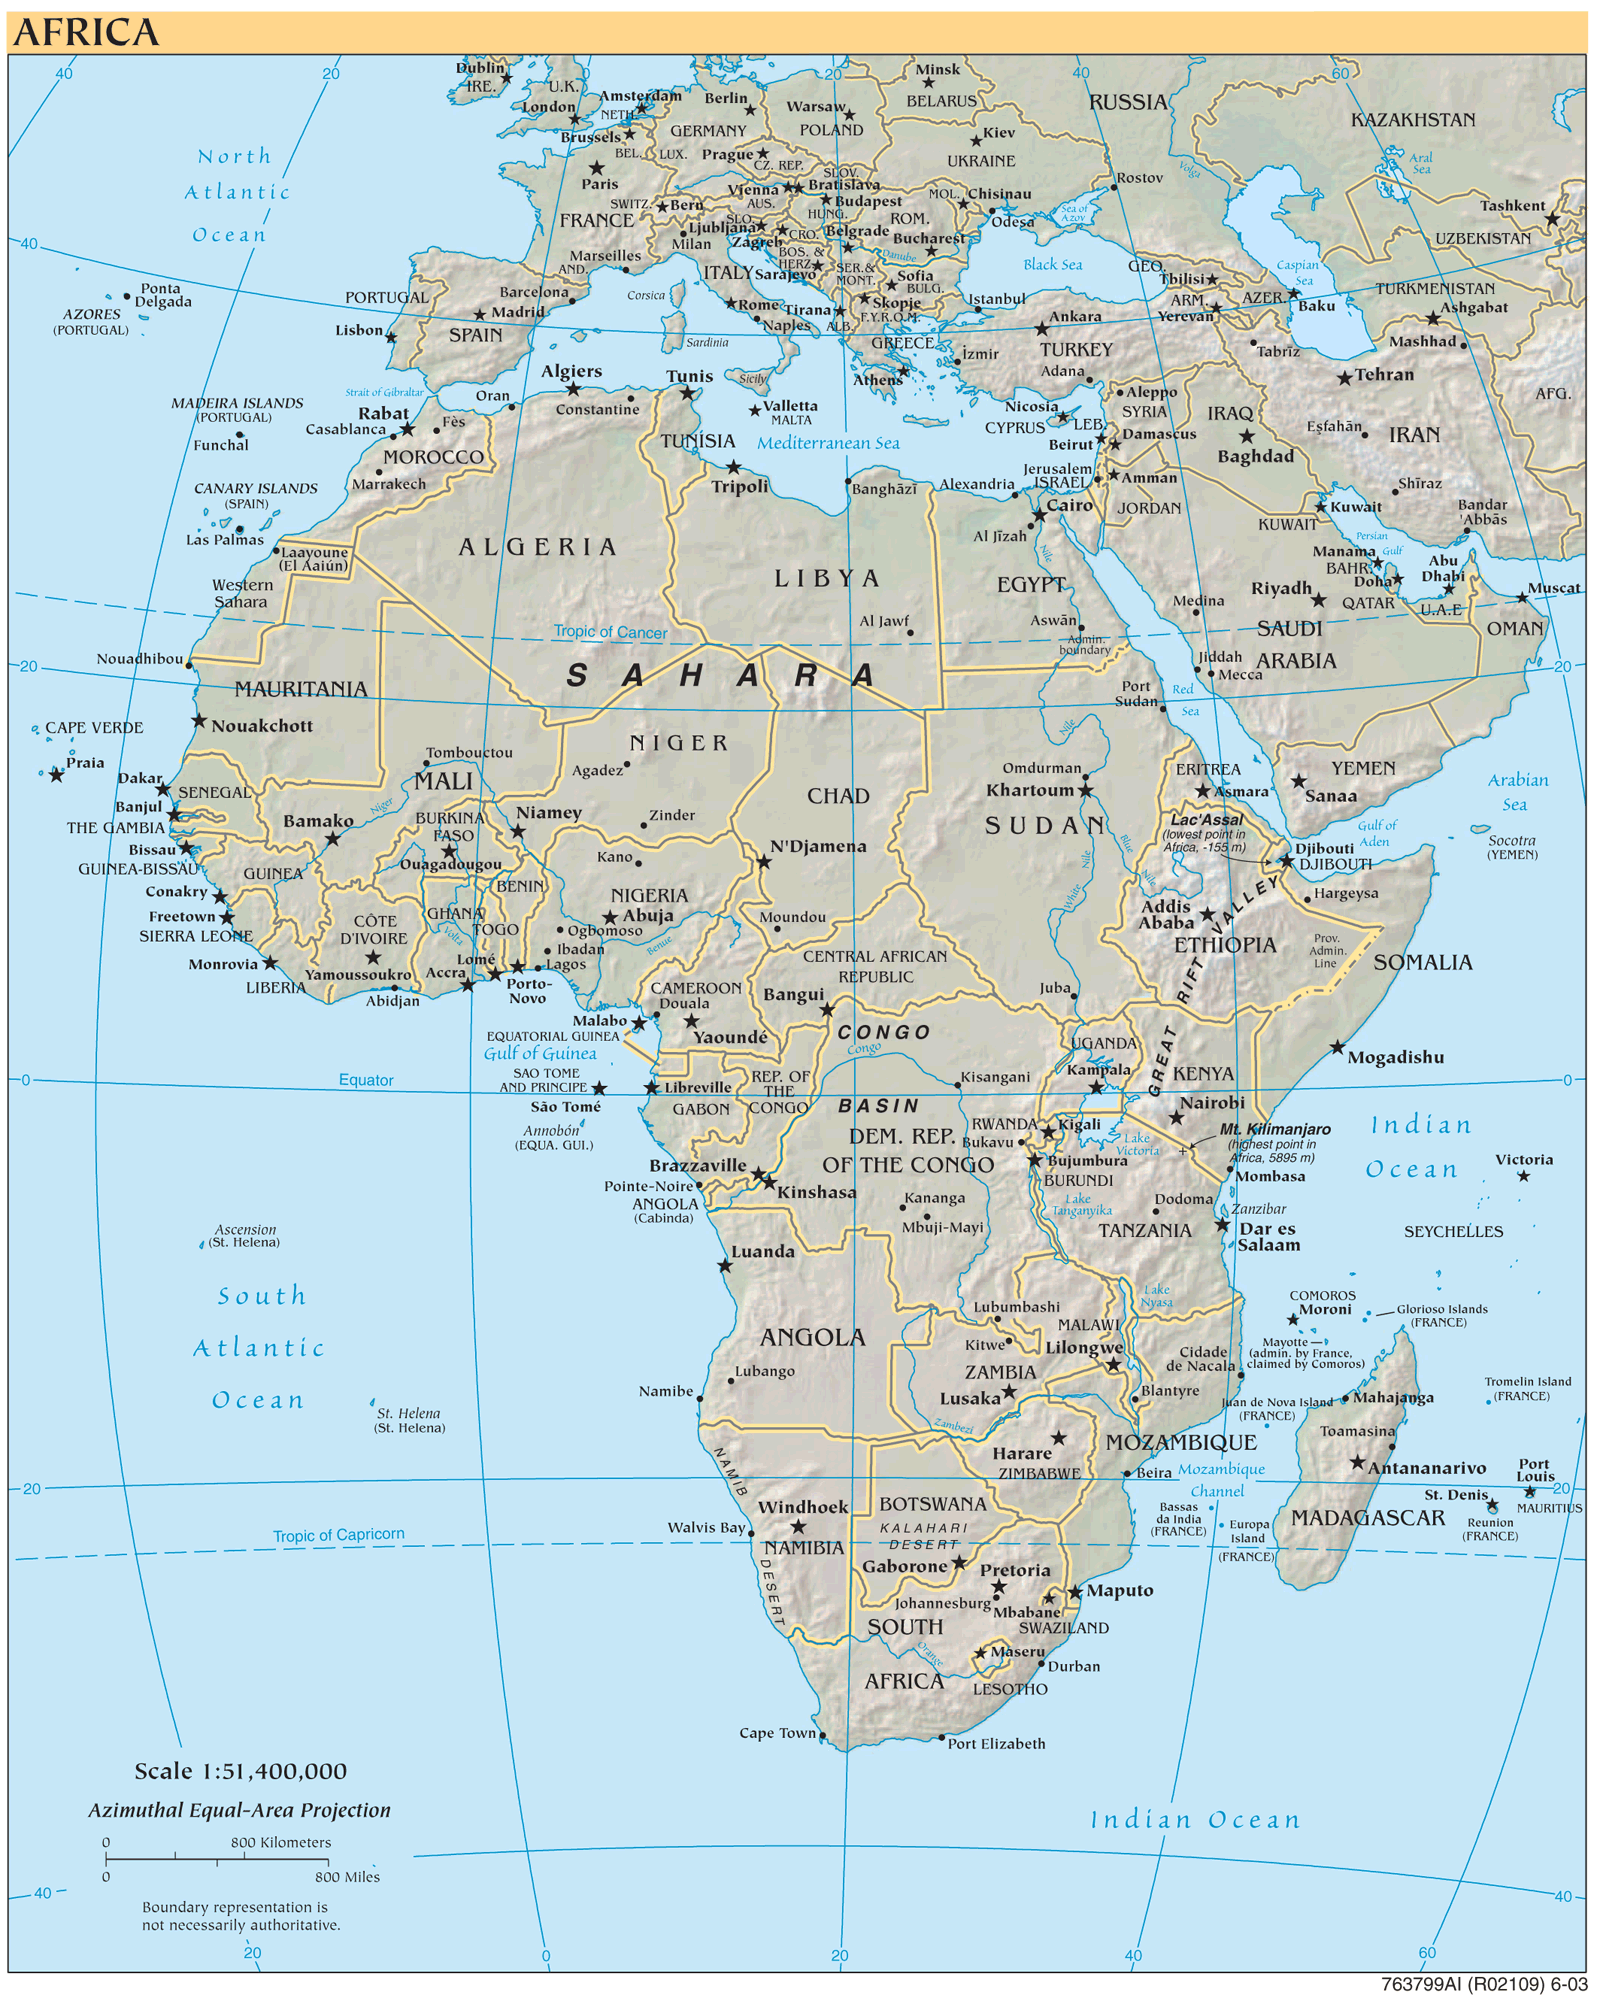 Africa Refeference Map